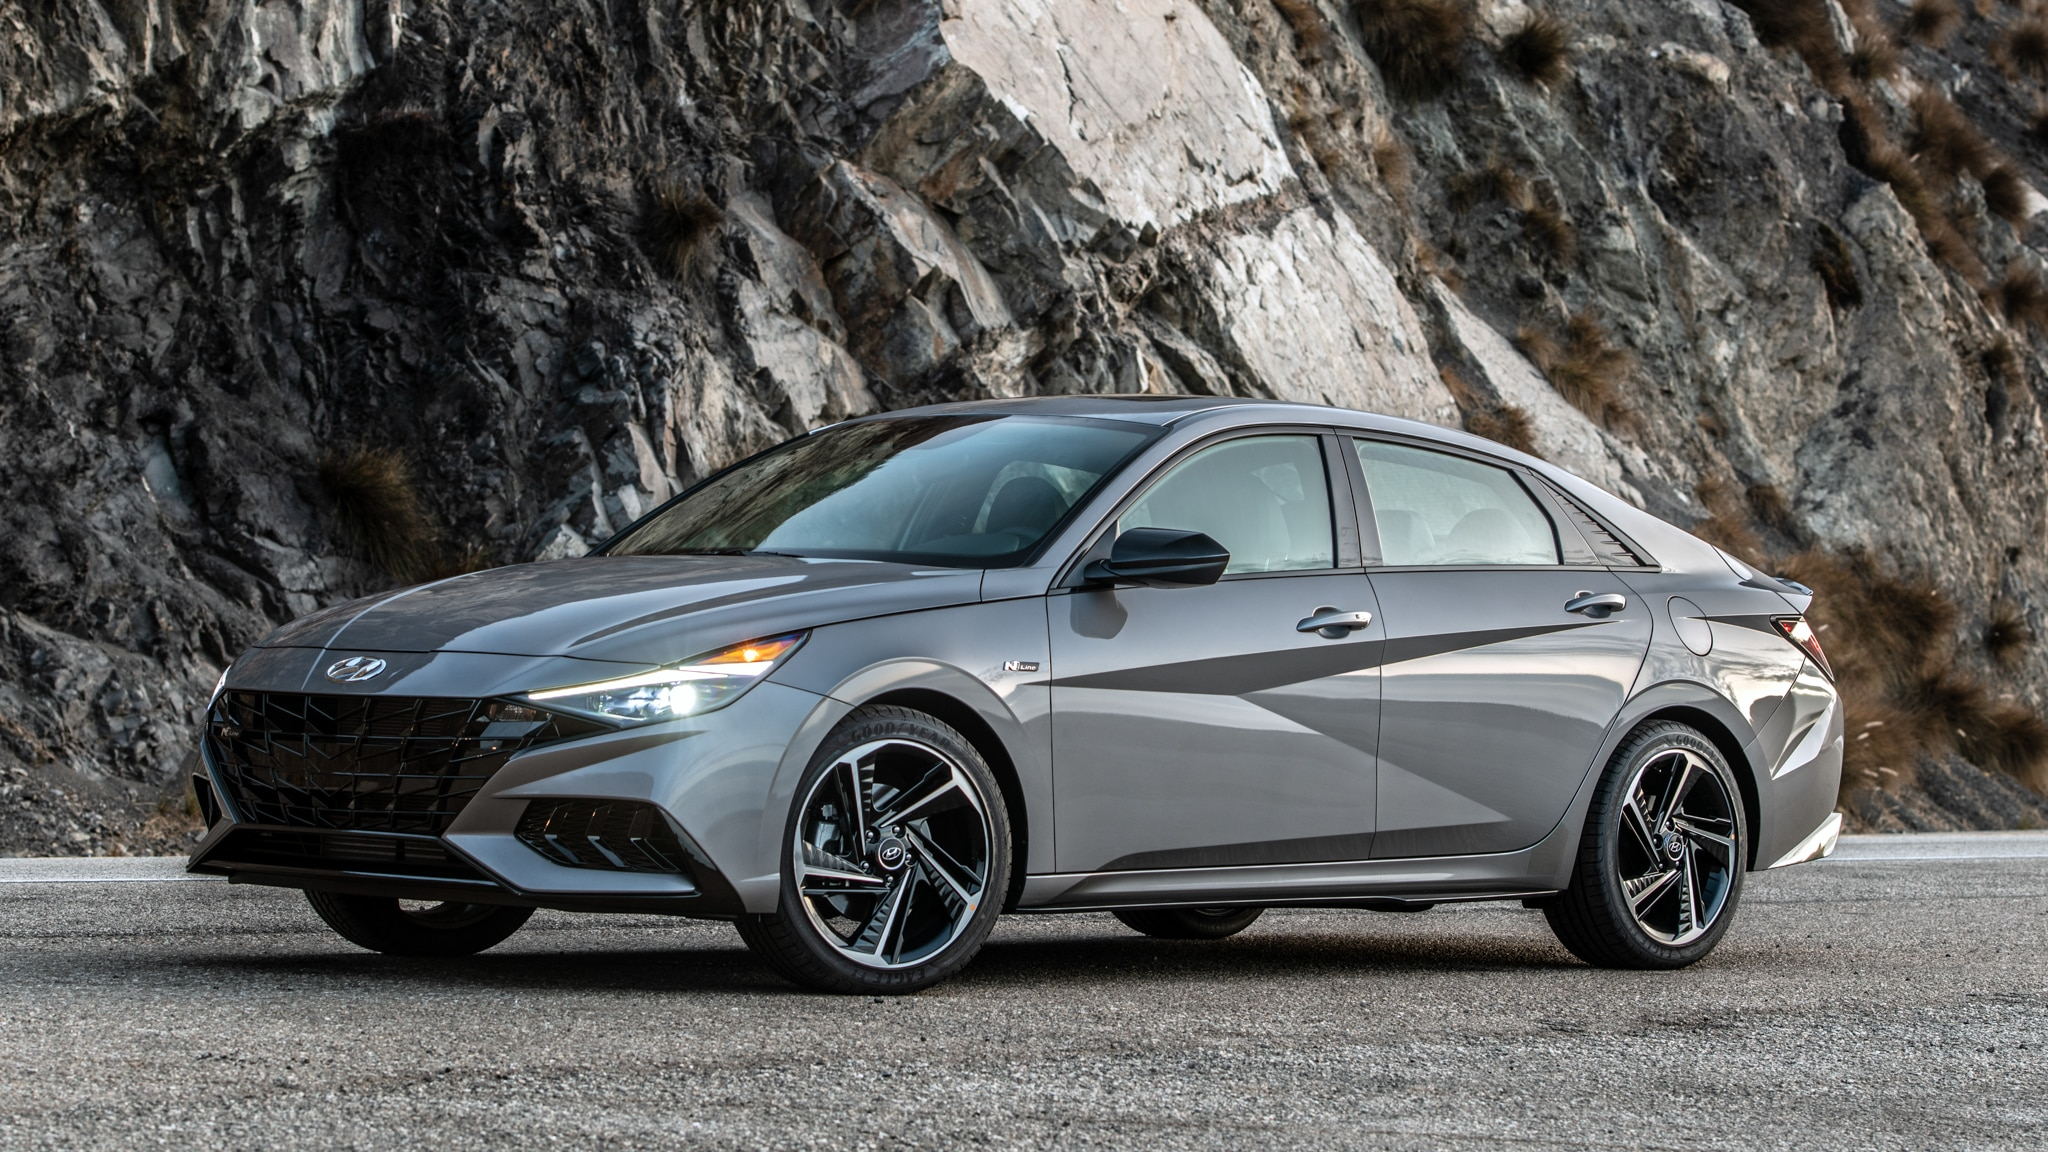 The kia forte was revealed two years ago to critical acclaim. 2021 Hyundai Elantra N-Line First Drive: Good, Affordable Fun